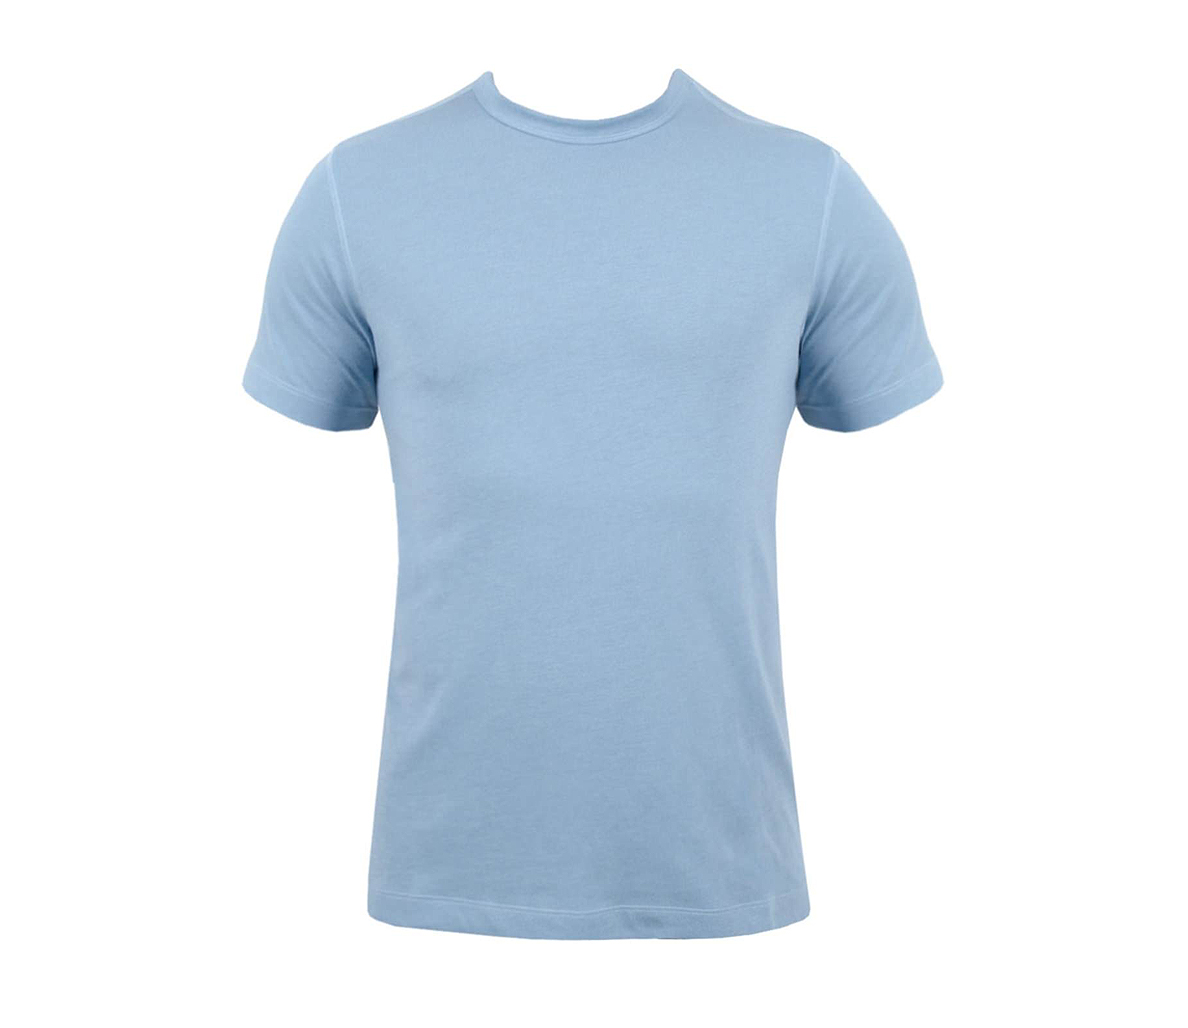 555f8f20 The Best Yoga Apparel for Men